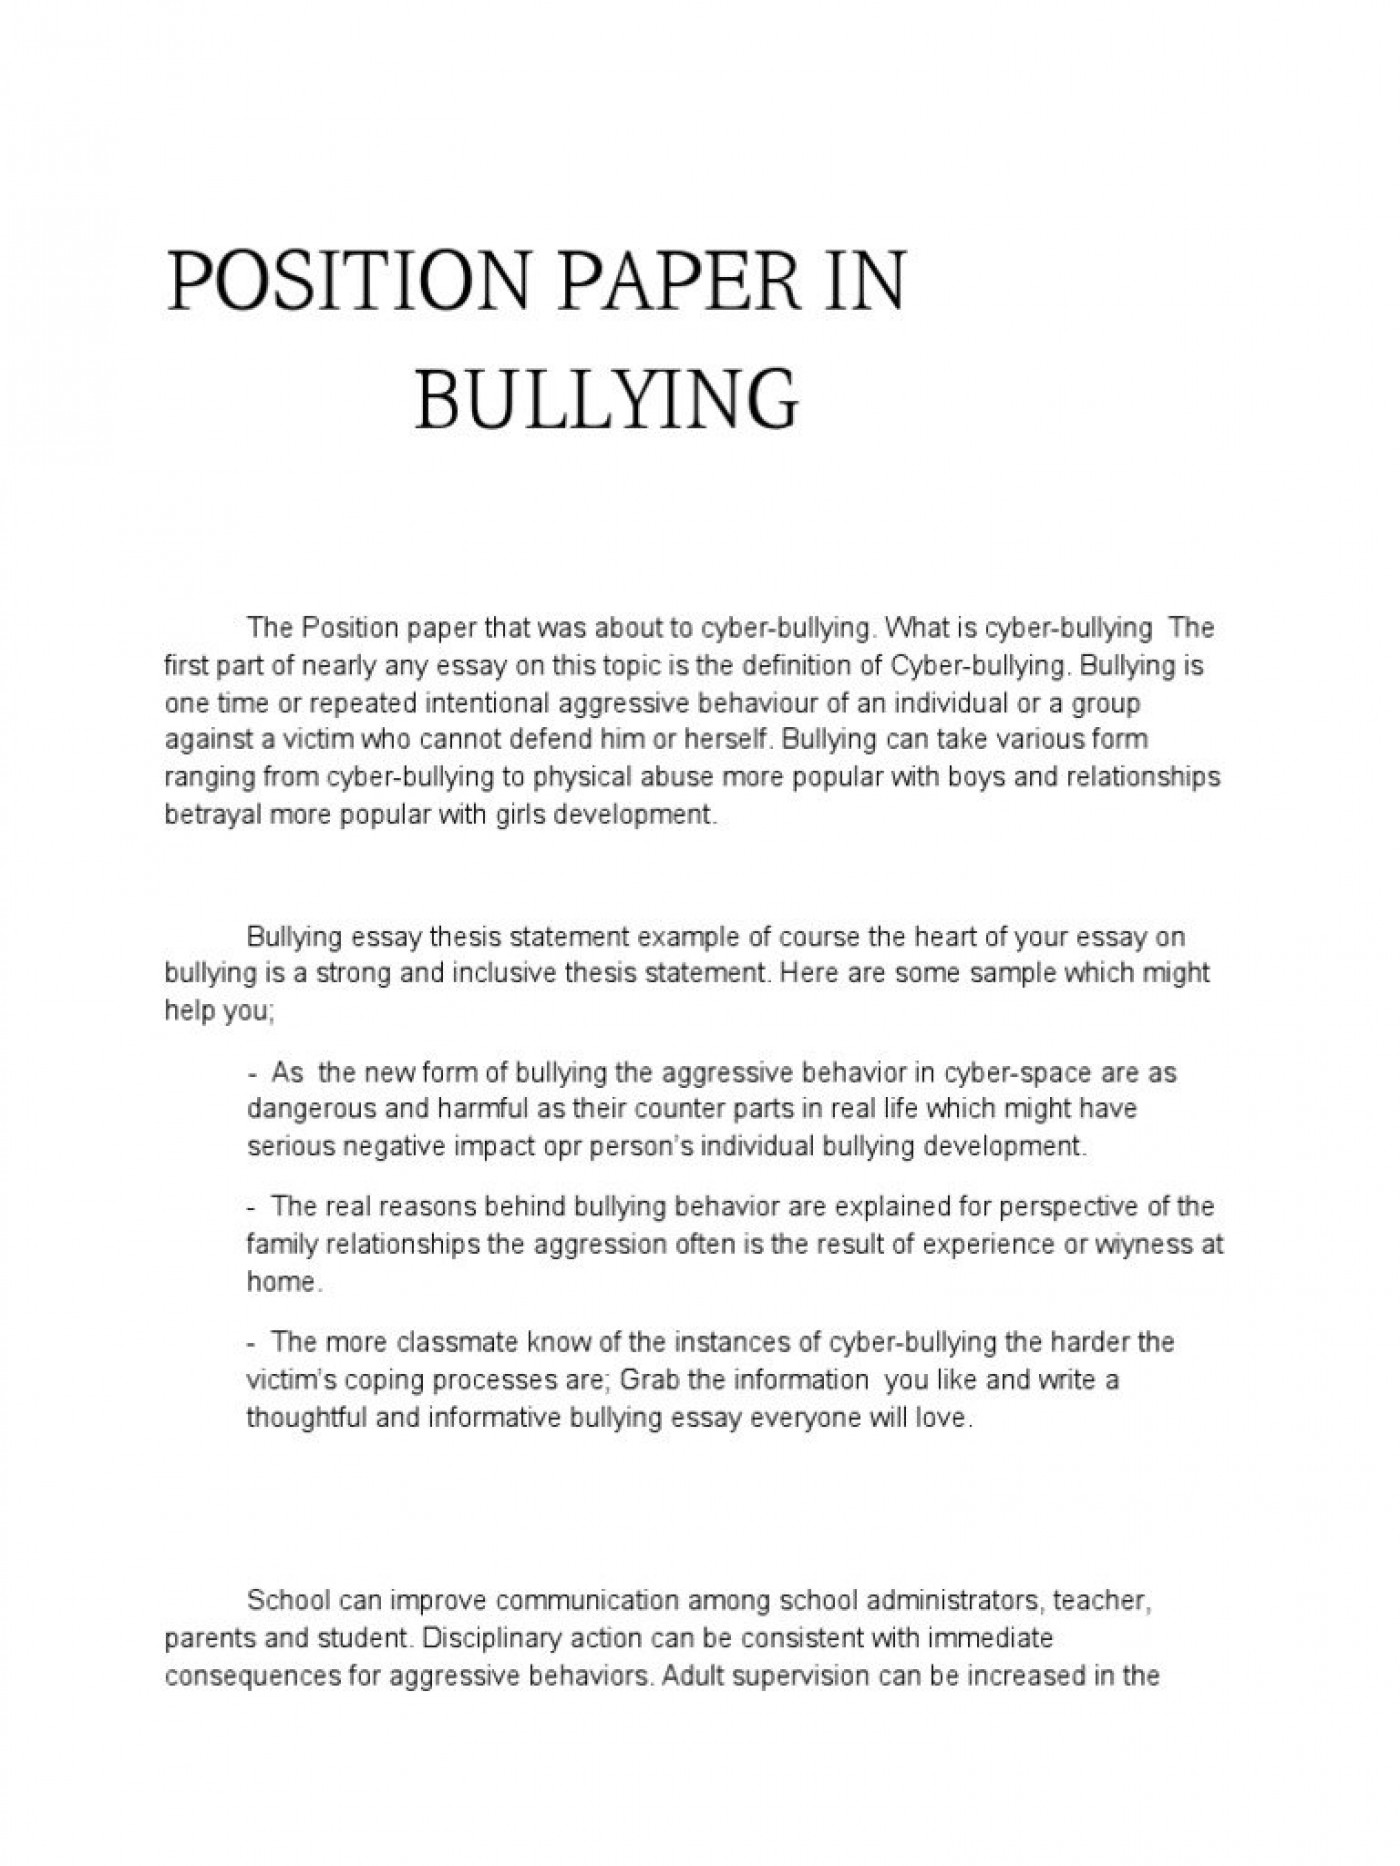 005 Bullying Essay Example Good Conclusion For Academic Writing Service Cause And Effect On In Awful Anti Cyber Argumentative Topics Thesis 1400